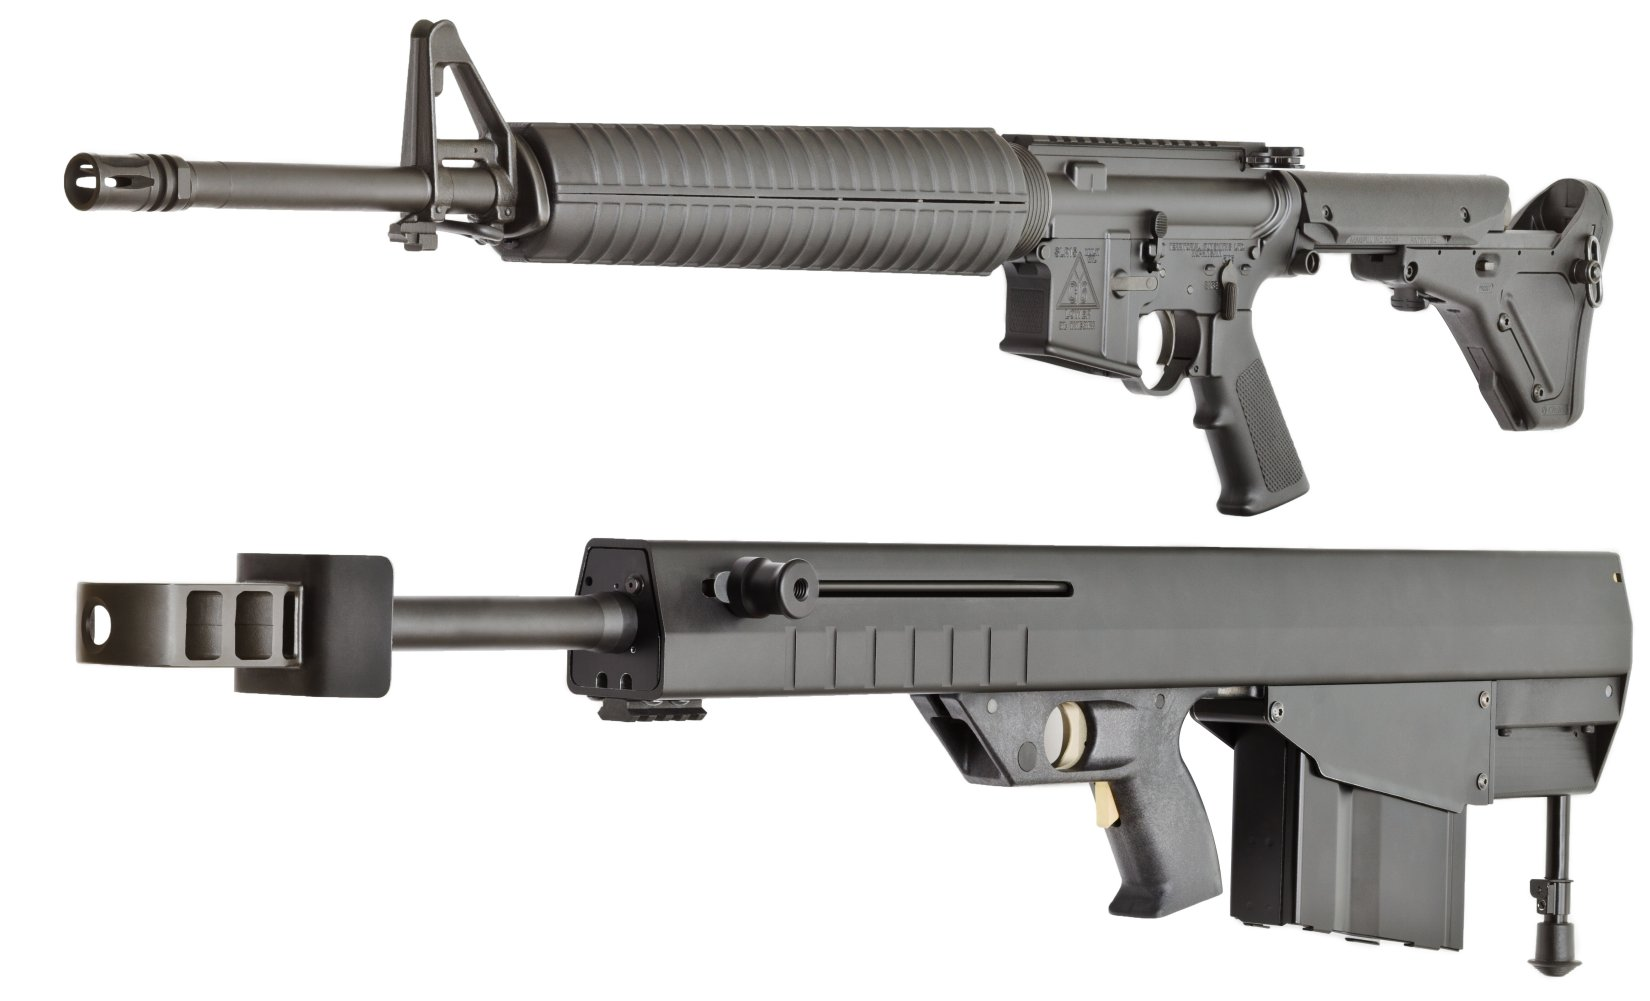 St. George Arms Leader 50 A1 Lightweight Bullpup Semi Auto .50 BMG Multi Caliber Anti Materie Sniper Rifle DefenseReview.com DR 6 St. George Arms Leader 50 A1 Ultra Lightweight, Compact Bullpup Semi Auto .50 BMG Multi Caliber Anti Materiel/Sniper Rifle is Less than 40 Inches Long and Weighs Less than 18 Pounds!: Ultimate Shoot n Scoot .50 BMG Mega Blaster for Military Special Operations Forces (SOF) and Civilian Tactical Shooters? (Photos!)